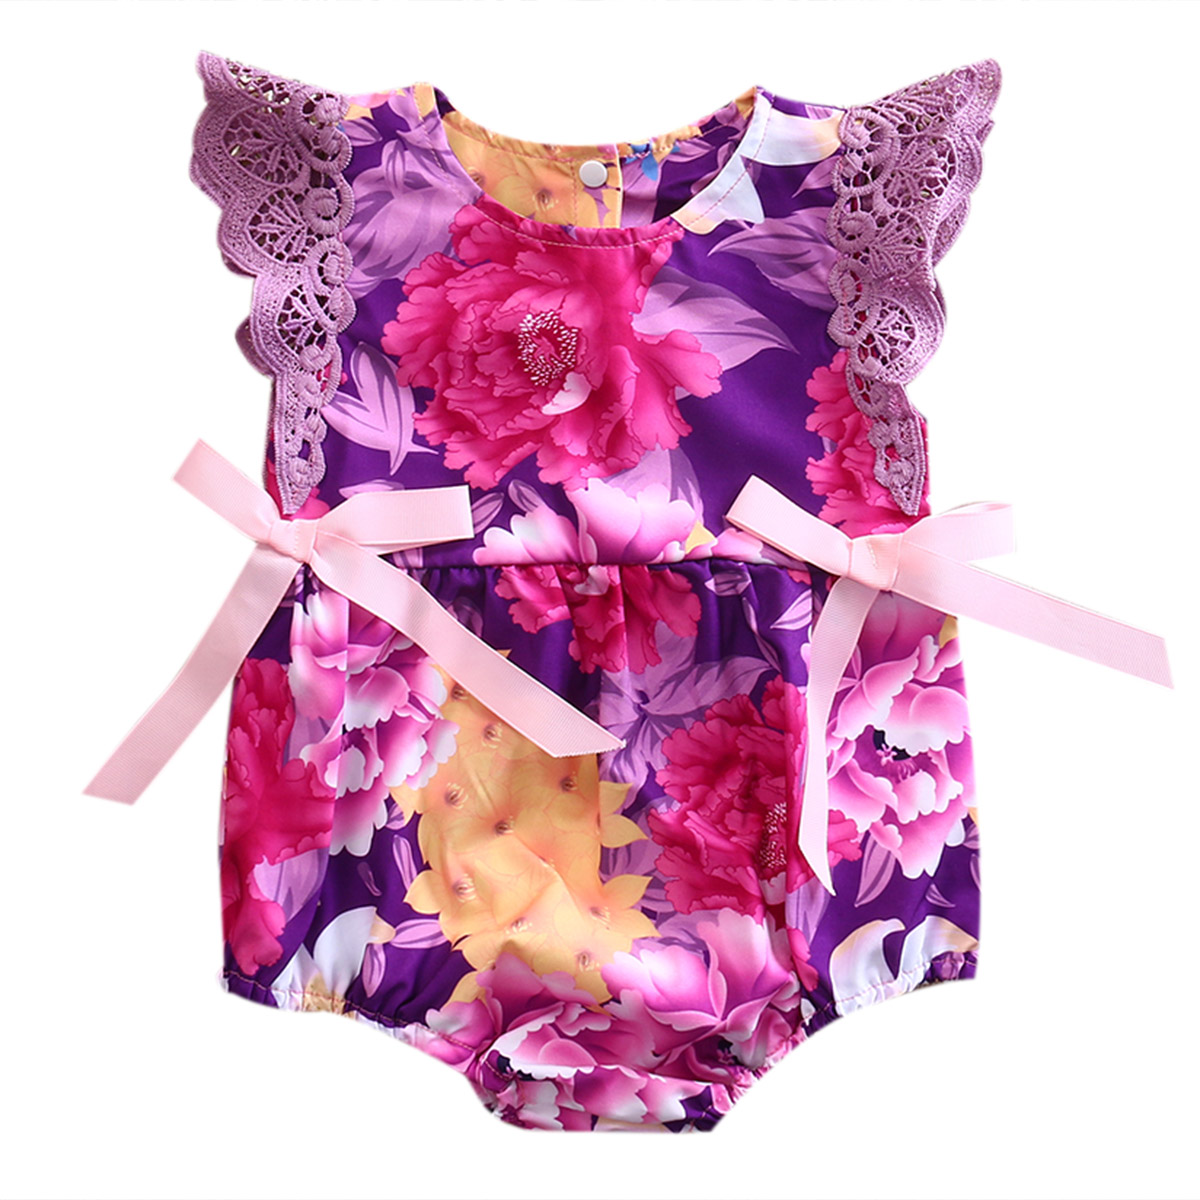 2017 Summer Newborn Baby Girl Romper Floral Purple Lace Romper Bownot Jumpsuit Outfit Sunsuit Clothes 2017 summer newborn baby girl white lace romper jumpsuit floral infant clothes outfit sunsuit